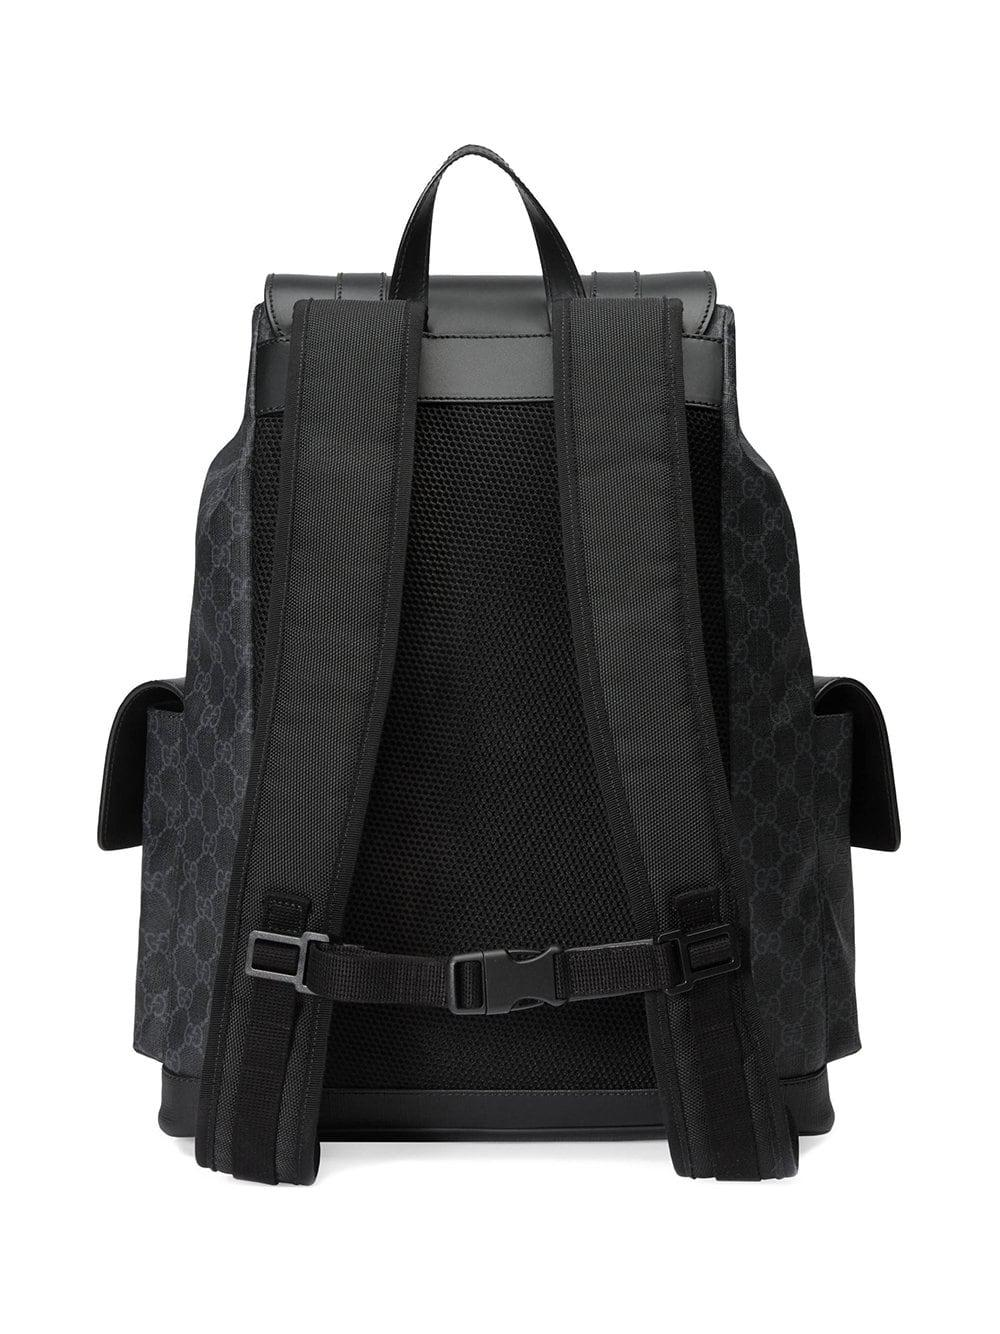 3b3b9931add7 Gucci Soft GG Supreme Backpack in Black for Men - Lyst